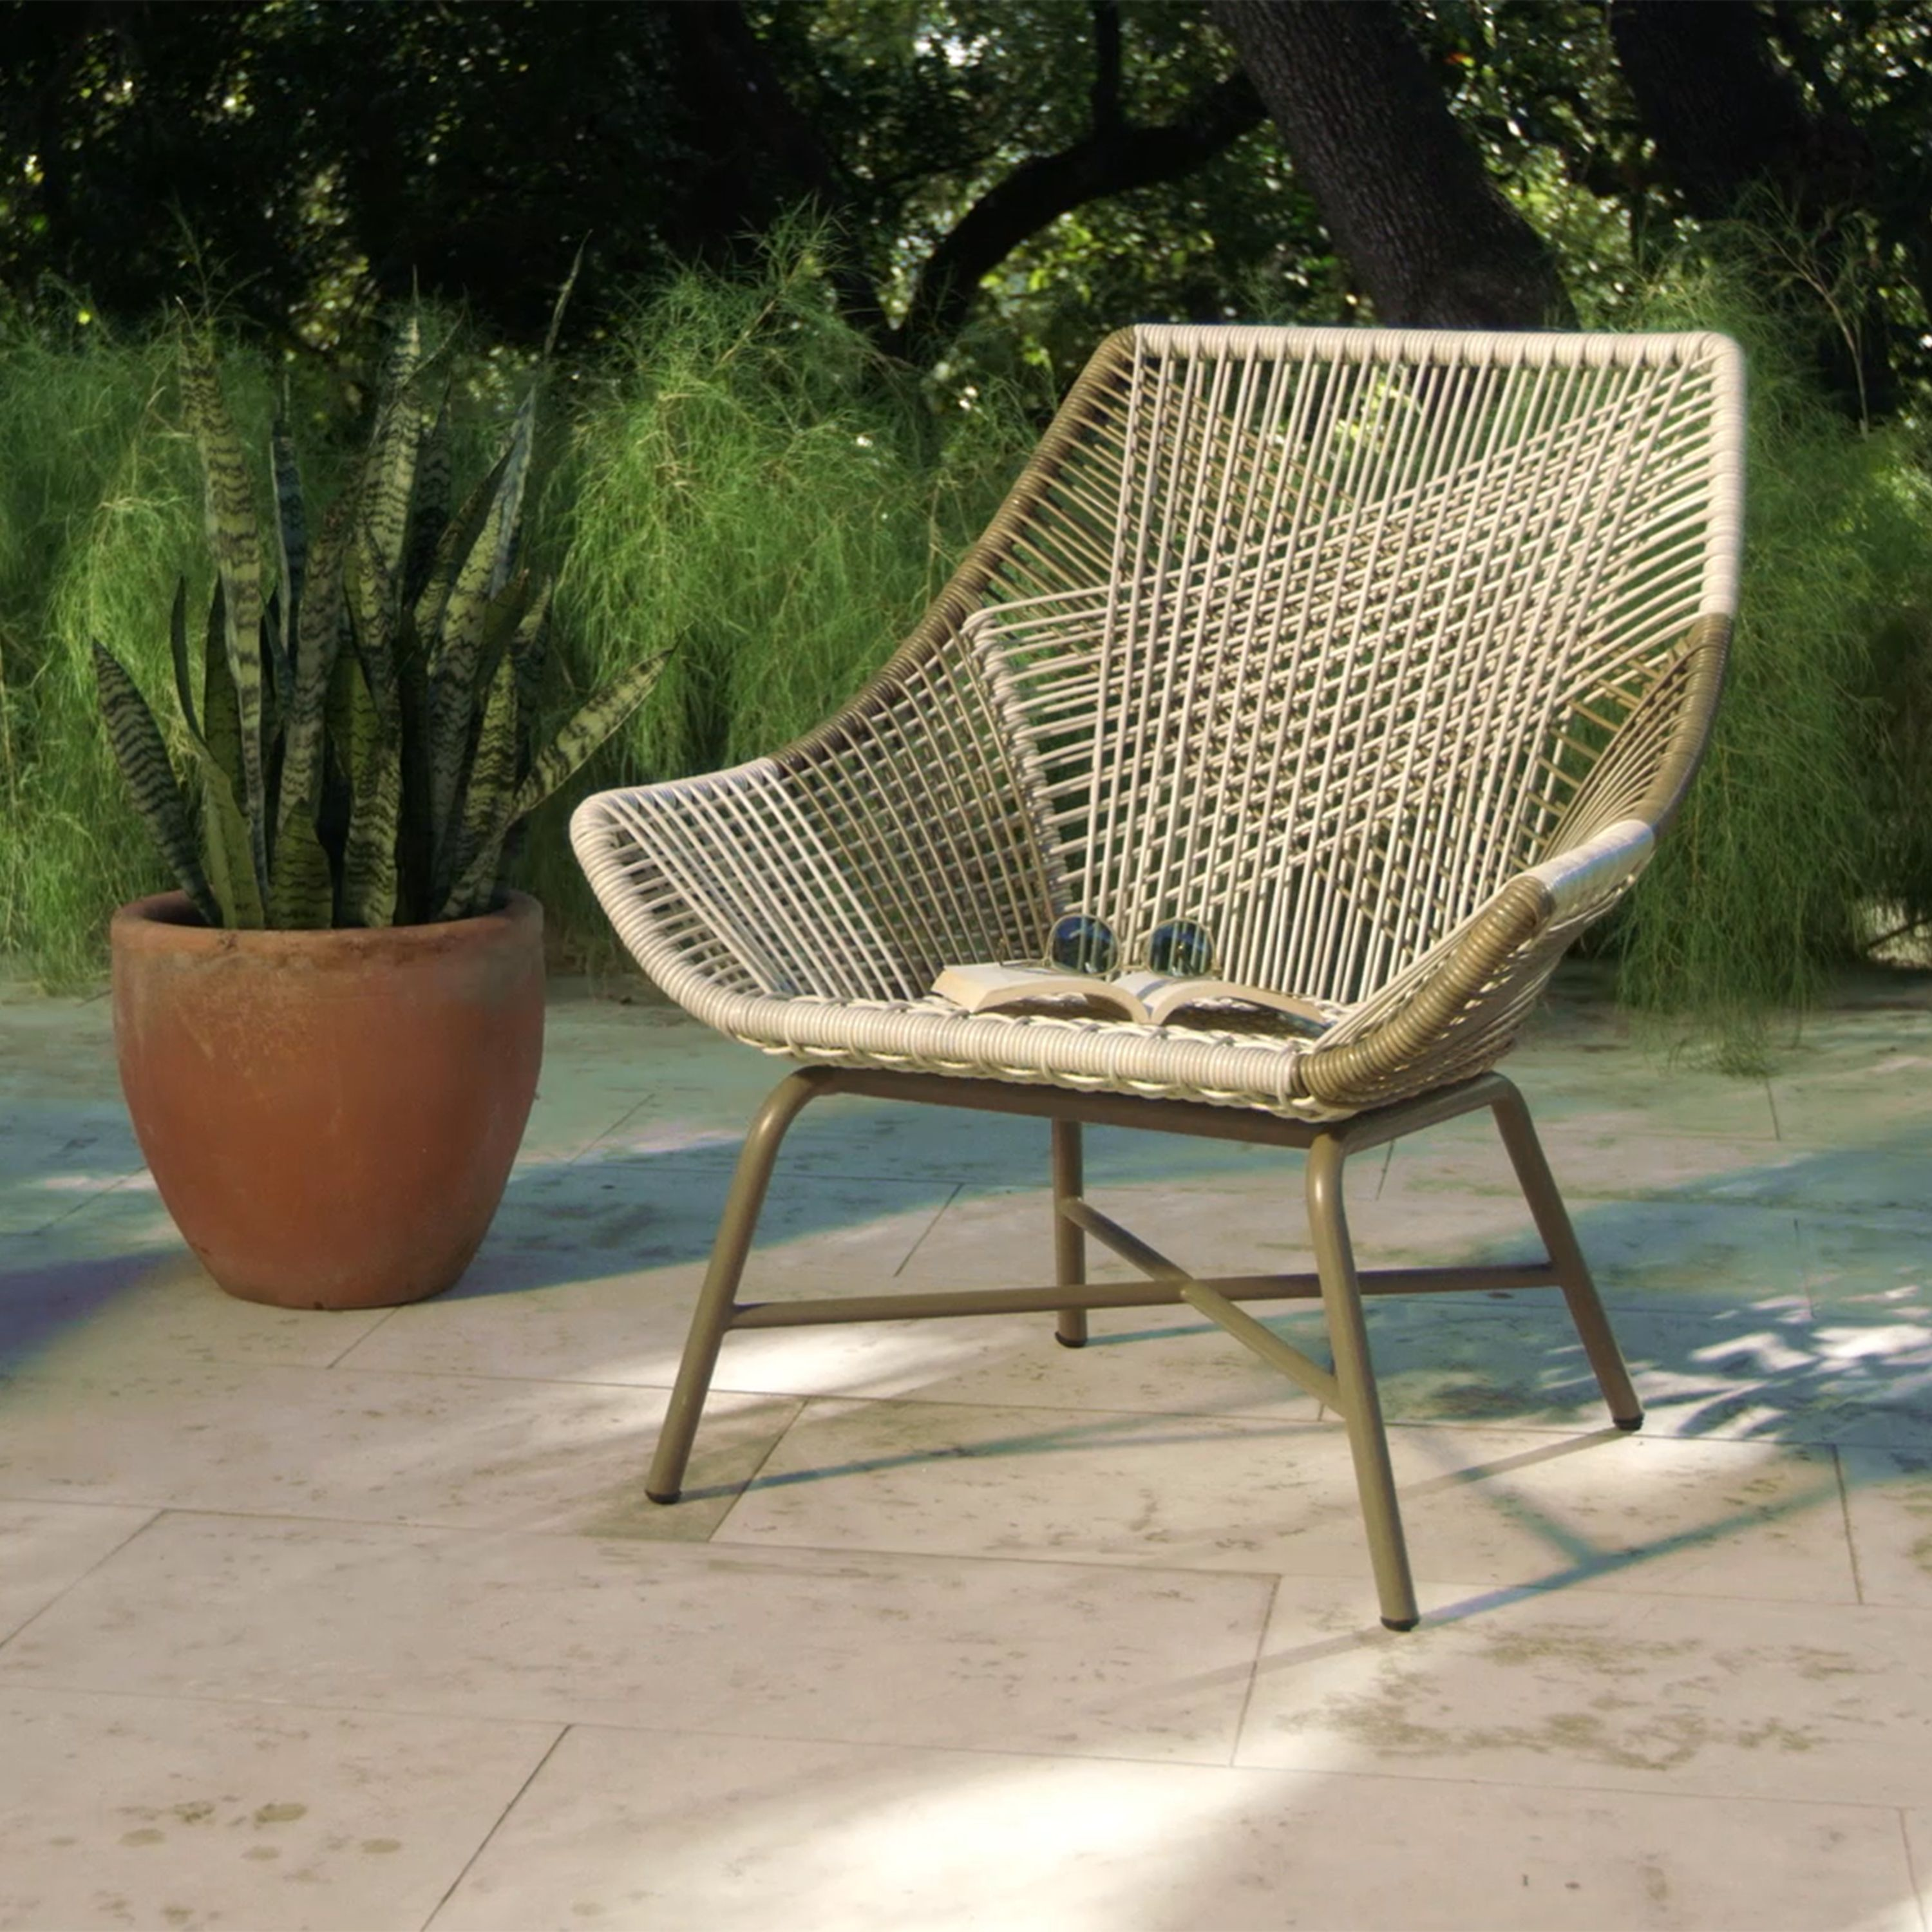 Standing on iron legs, our lounge chair is crafted of